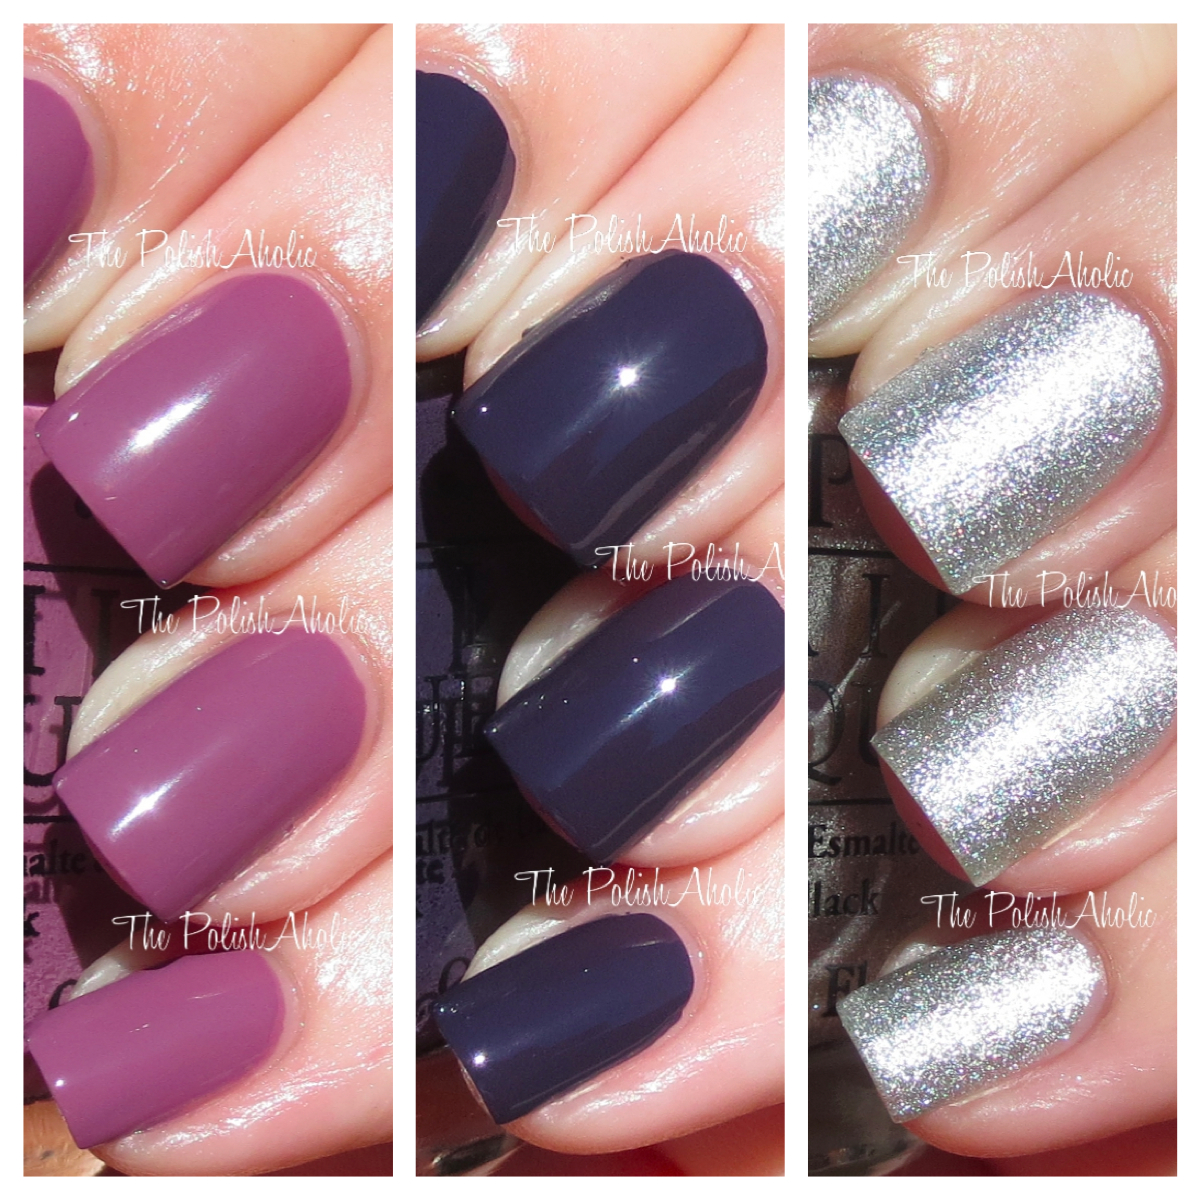 The PolishAholic: OPI Miss Universe 2013 Collection Swatches